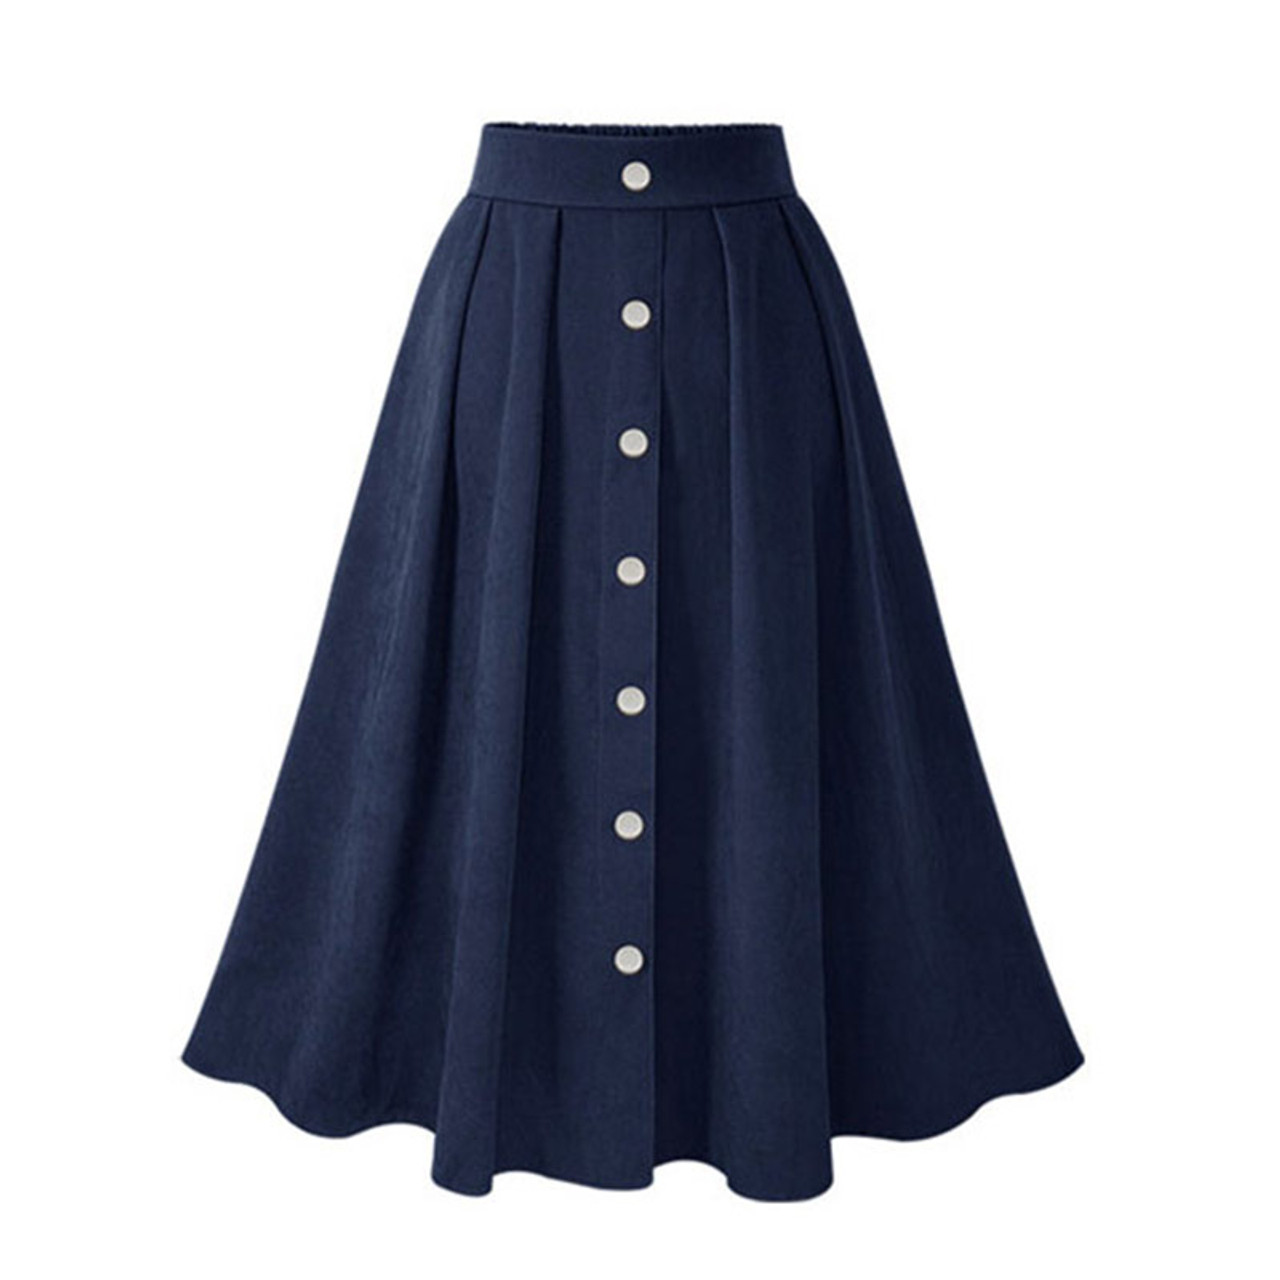 98b9312bd1 ... HDY Haoduoyi Pleated Skirts Button High Waist Elastic Mid Skirt Korean  Style Women Skirts Fashion New ...